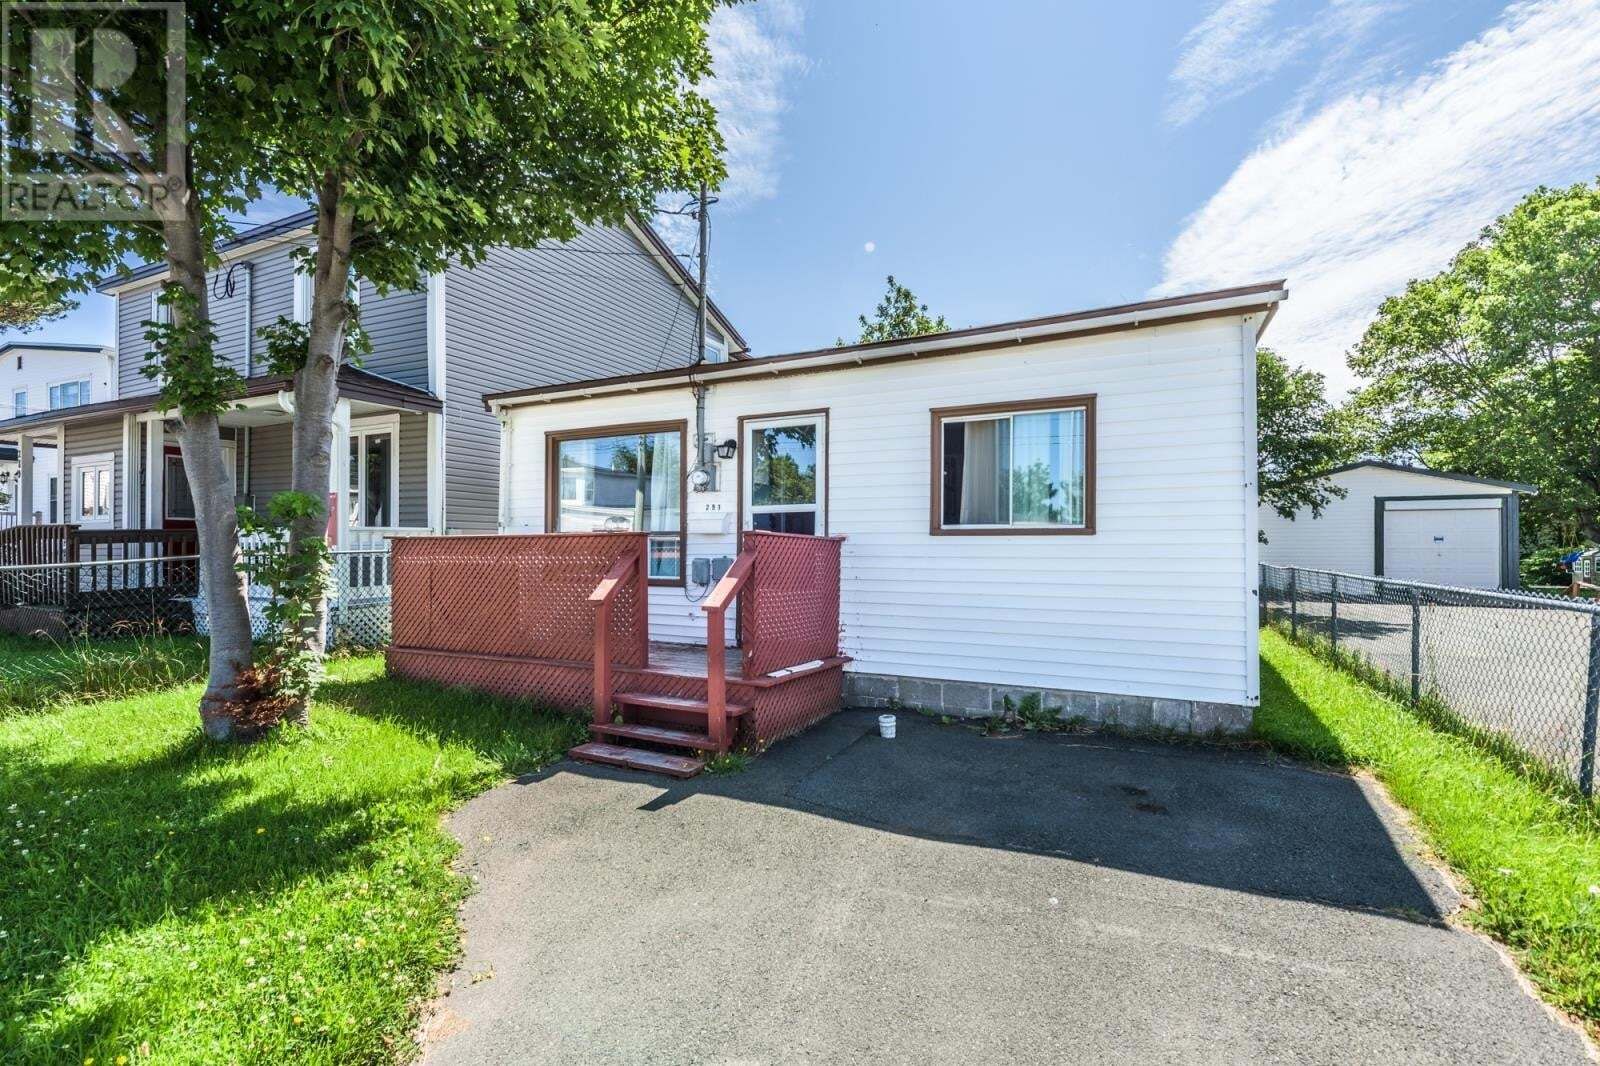 House for sale at 291 Pennywell Rd St. John's Newfoundland - MLS: 1218626